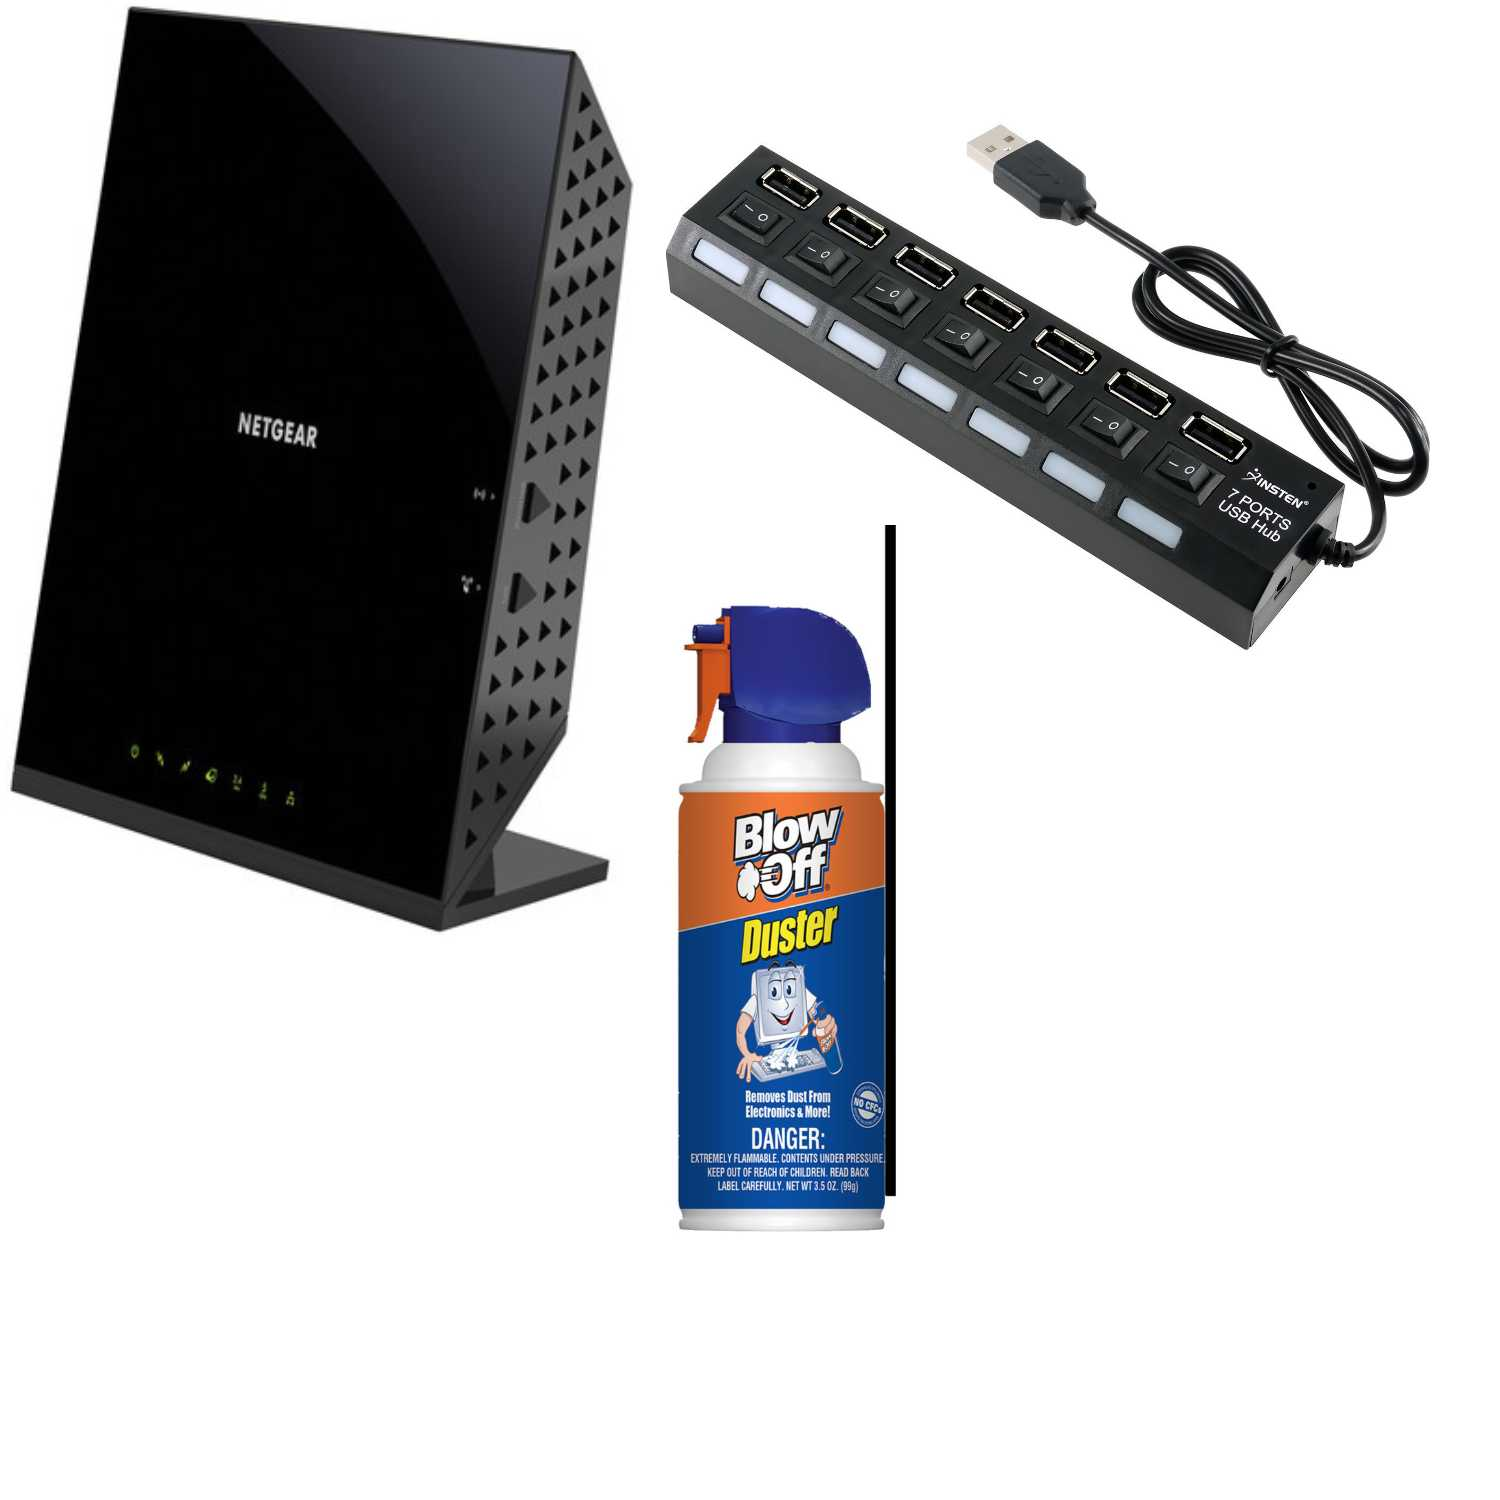 Netgear AC1600 Smart Wi-Fi Router with 7-Port USB Hub and Air Duster Bundle